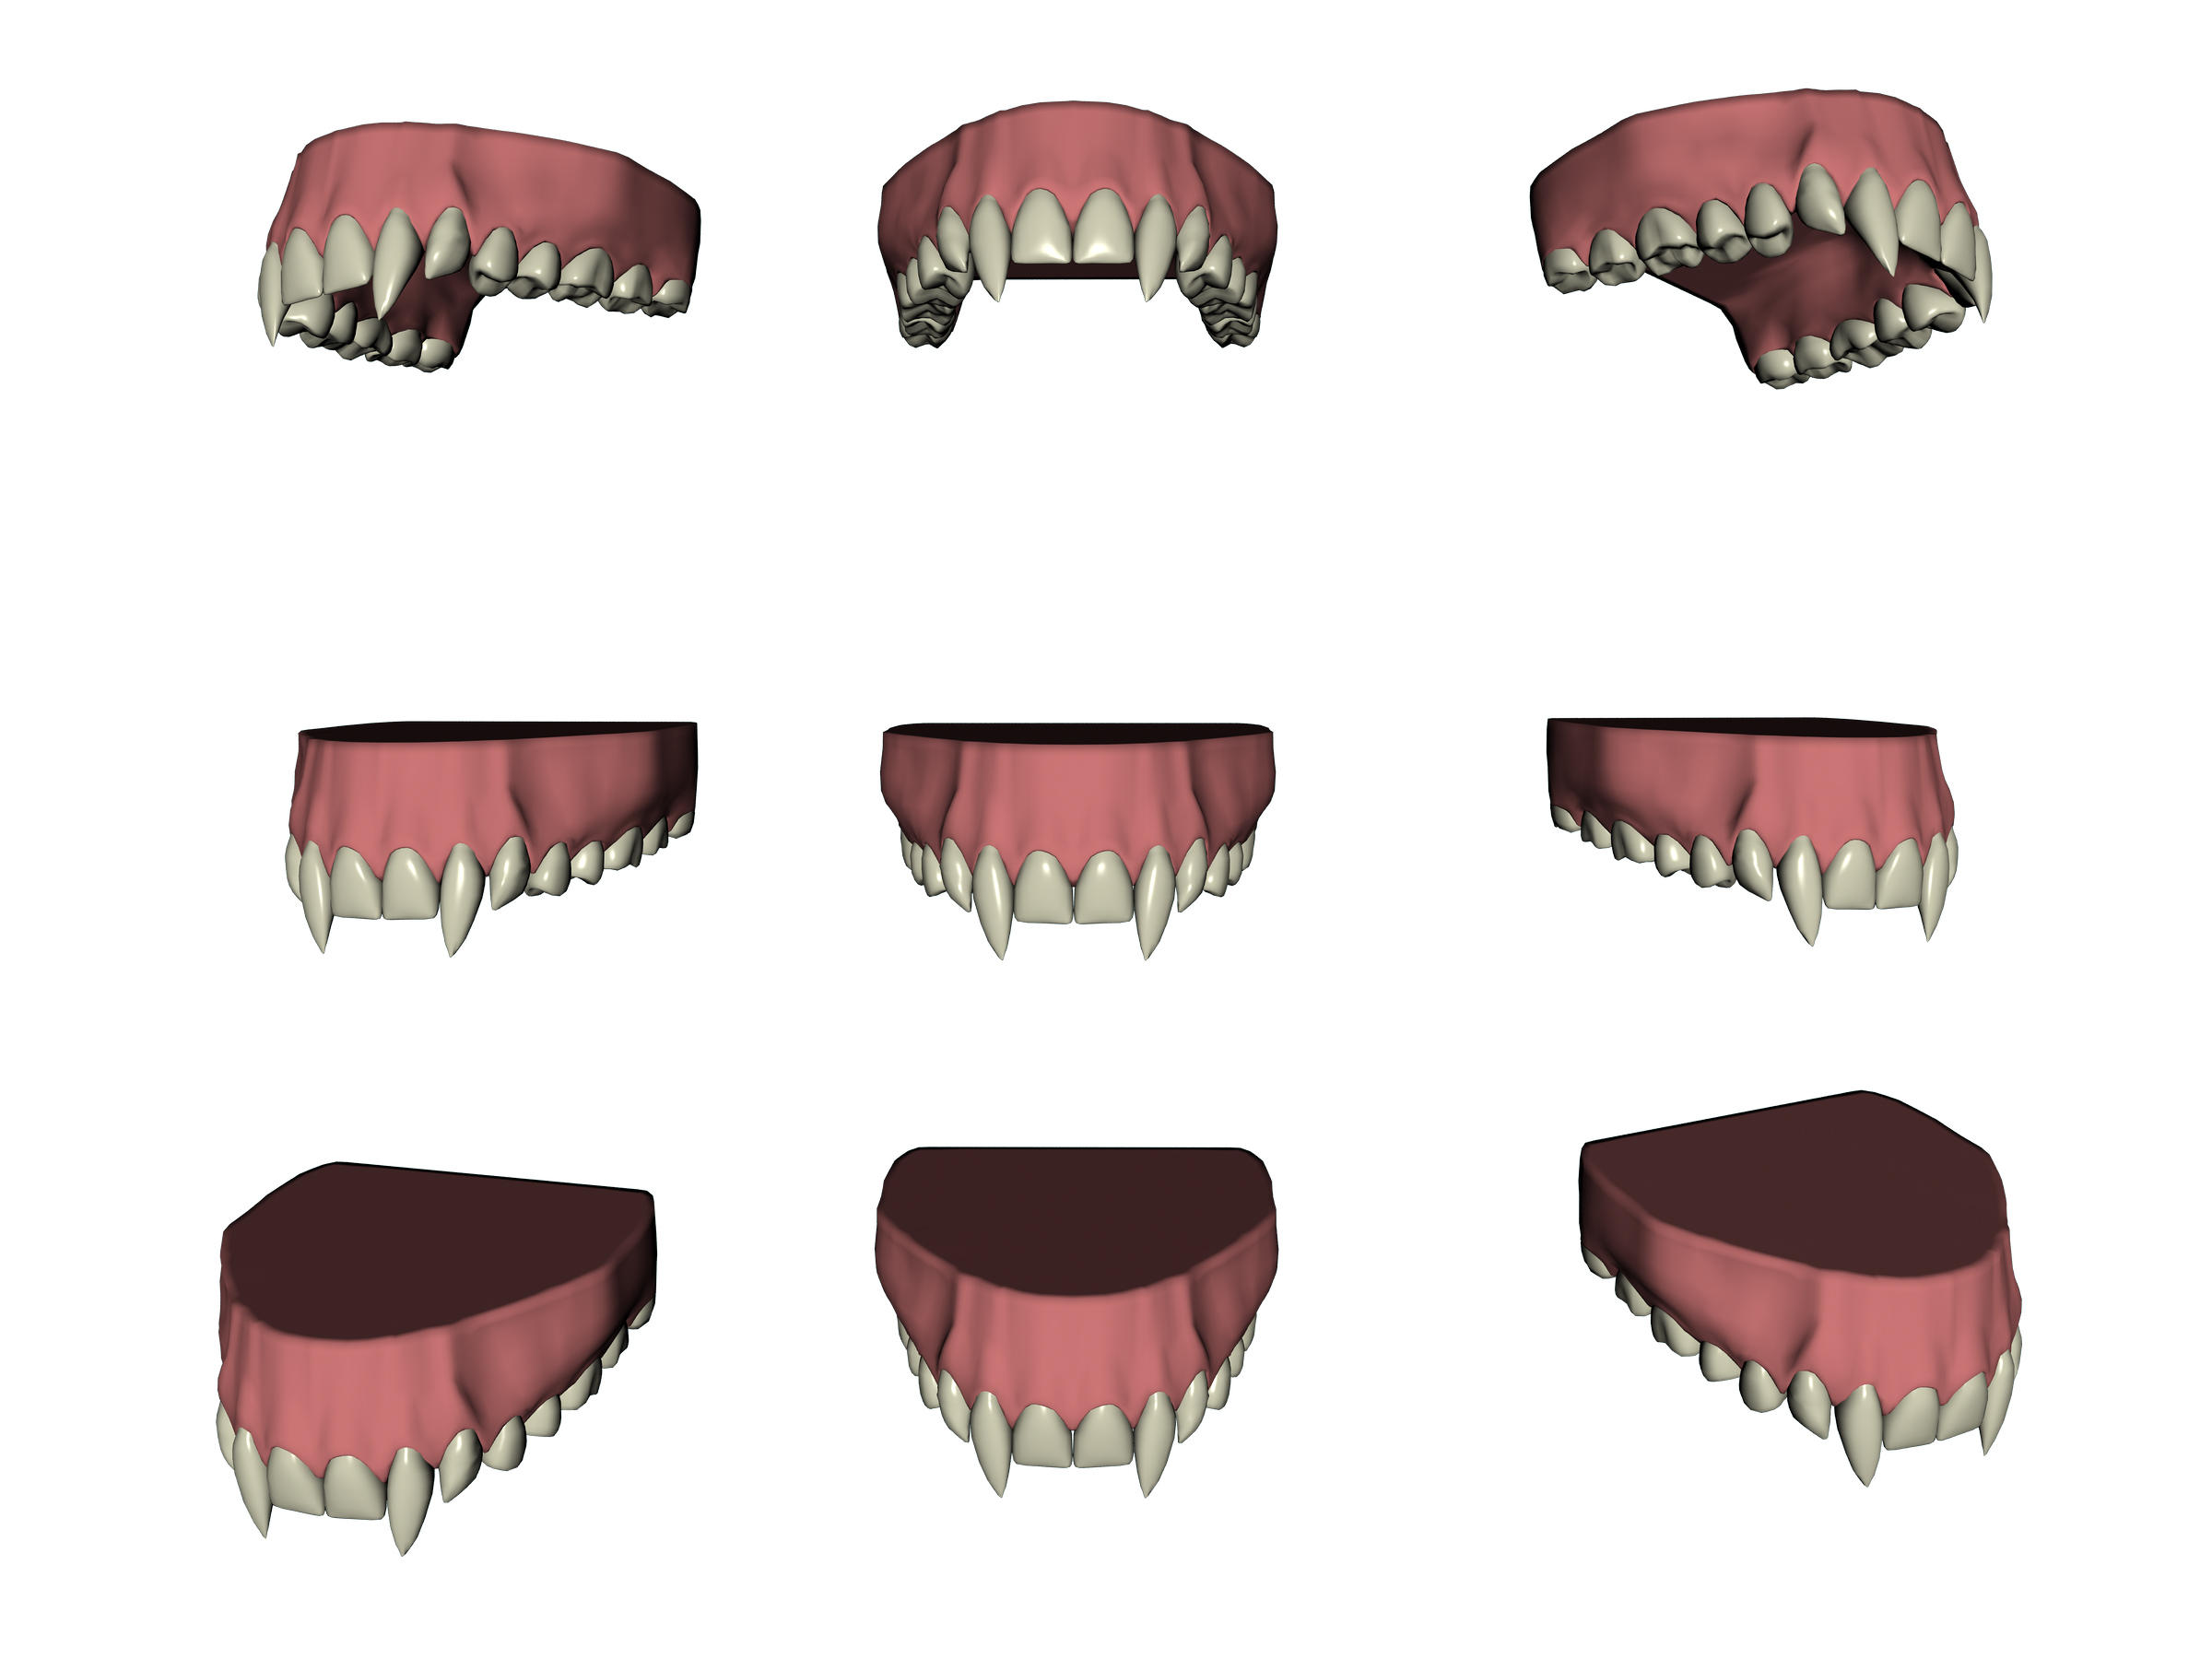 Vampire Teeth Set 1 by markopolio-stock